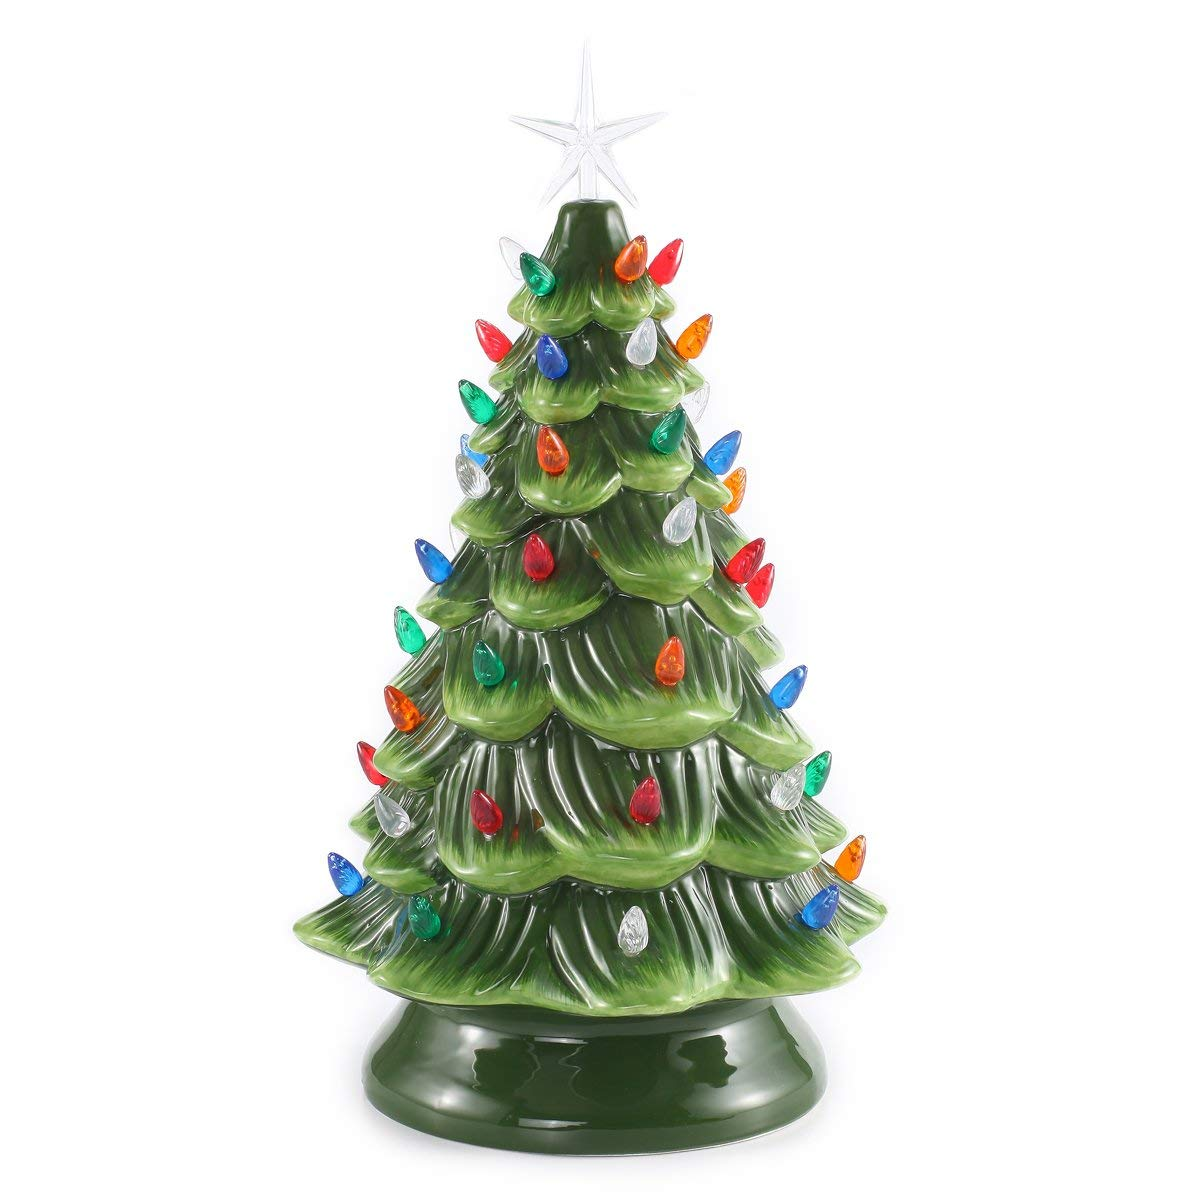 Prelit Ceramic Christmas Tree with Multicolor Bulbs - Nostalgic Christmas Decor - These are my FAVORITE